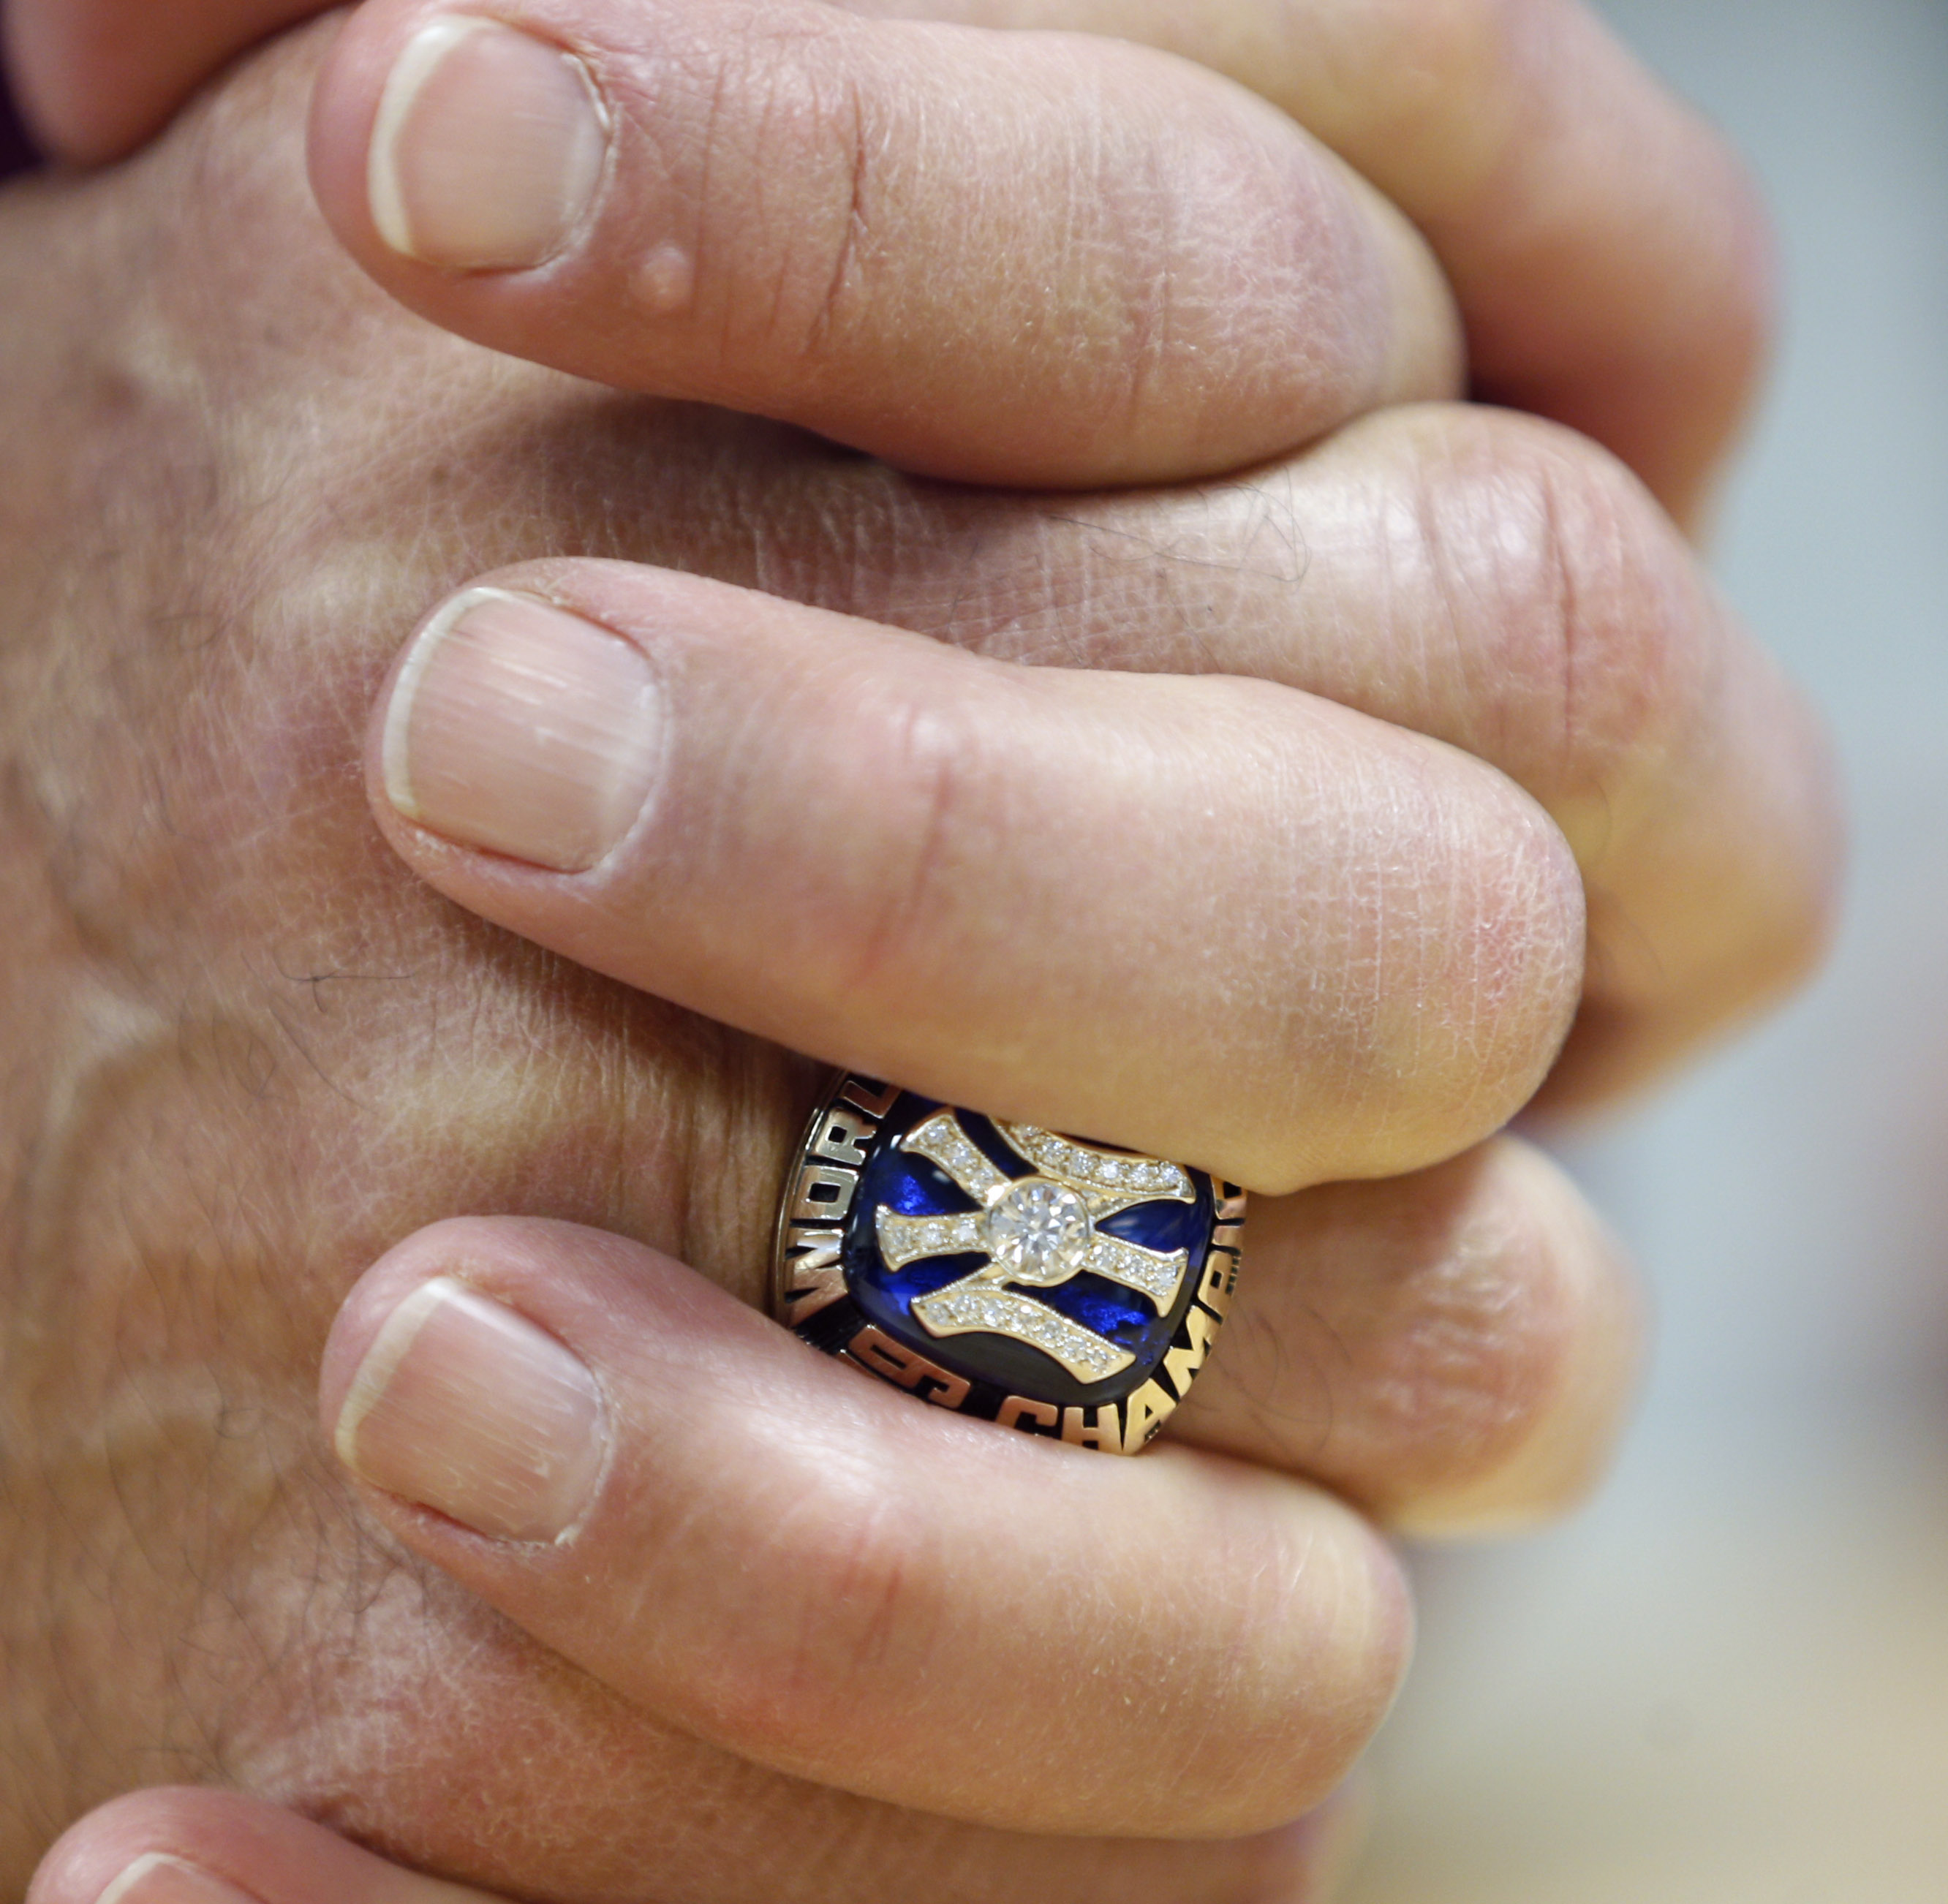 <div class='meta'><div class='origin-logo' data-origin='AP'></div><span class='caption-text' data-credit='AP Photo/Mike Groll'>Former New York Yankees manager Joe Torre wears a World Series ring during his orientation visit at the Baseball Hall of Fame.</span></div>